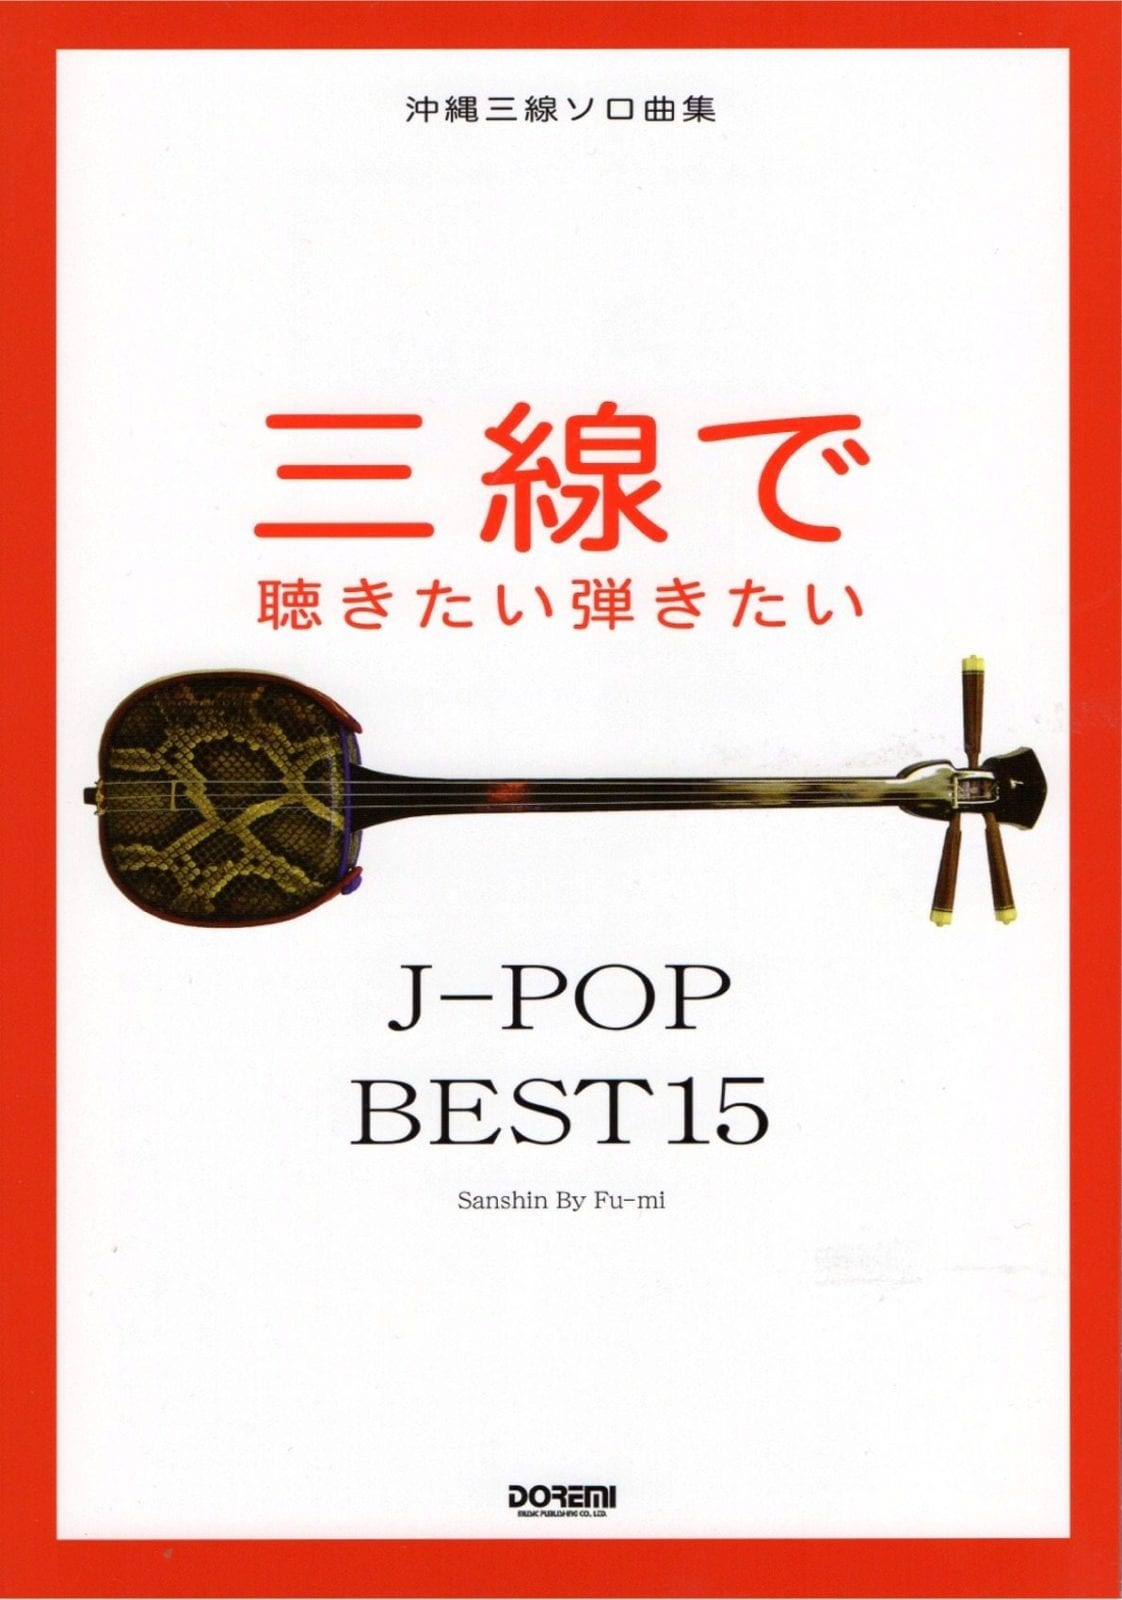 Sanshin music score (kunkunshi) Let's play J-POP with Sanshin! BEST15 【Mail available products】